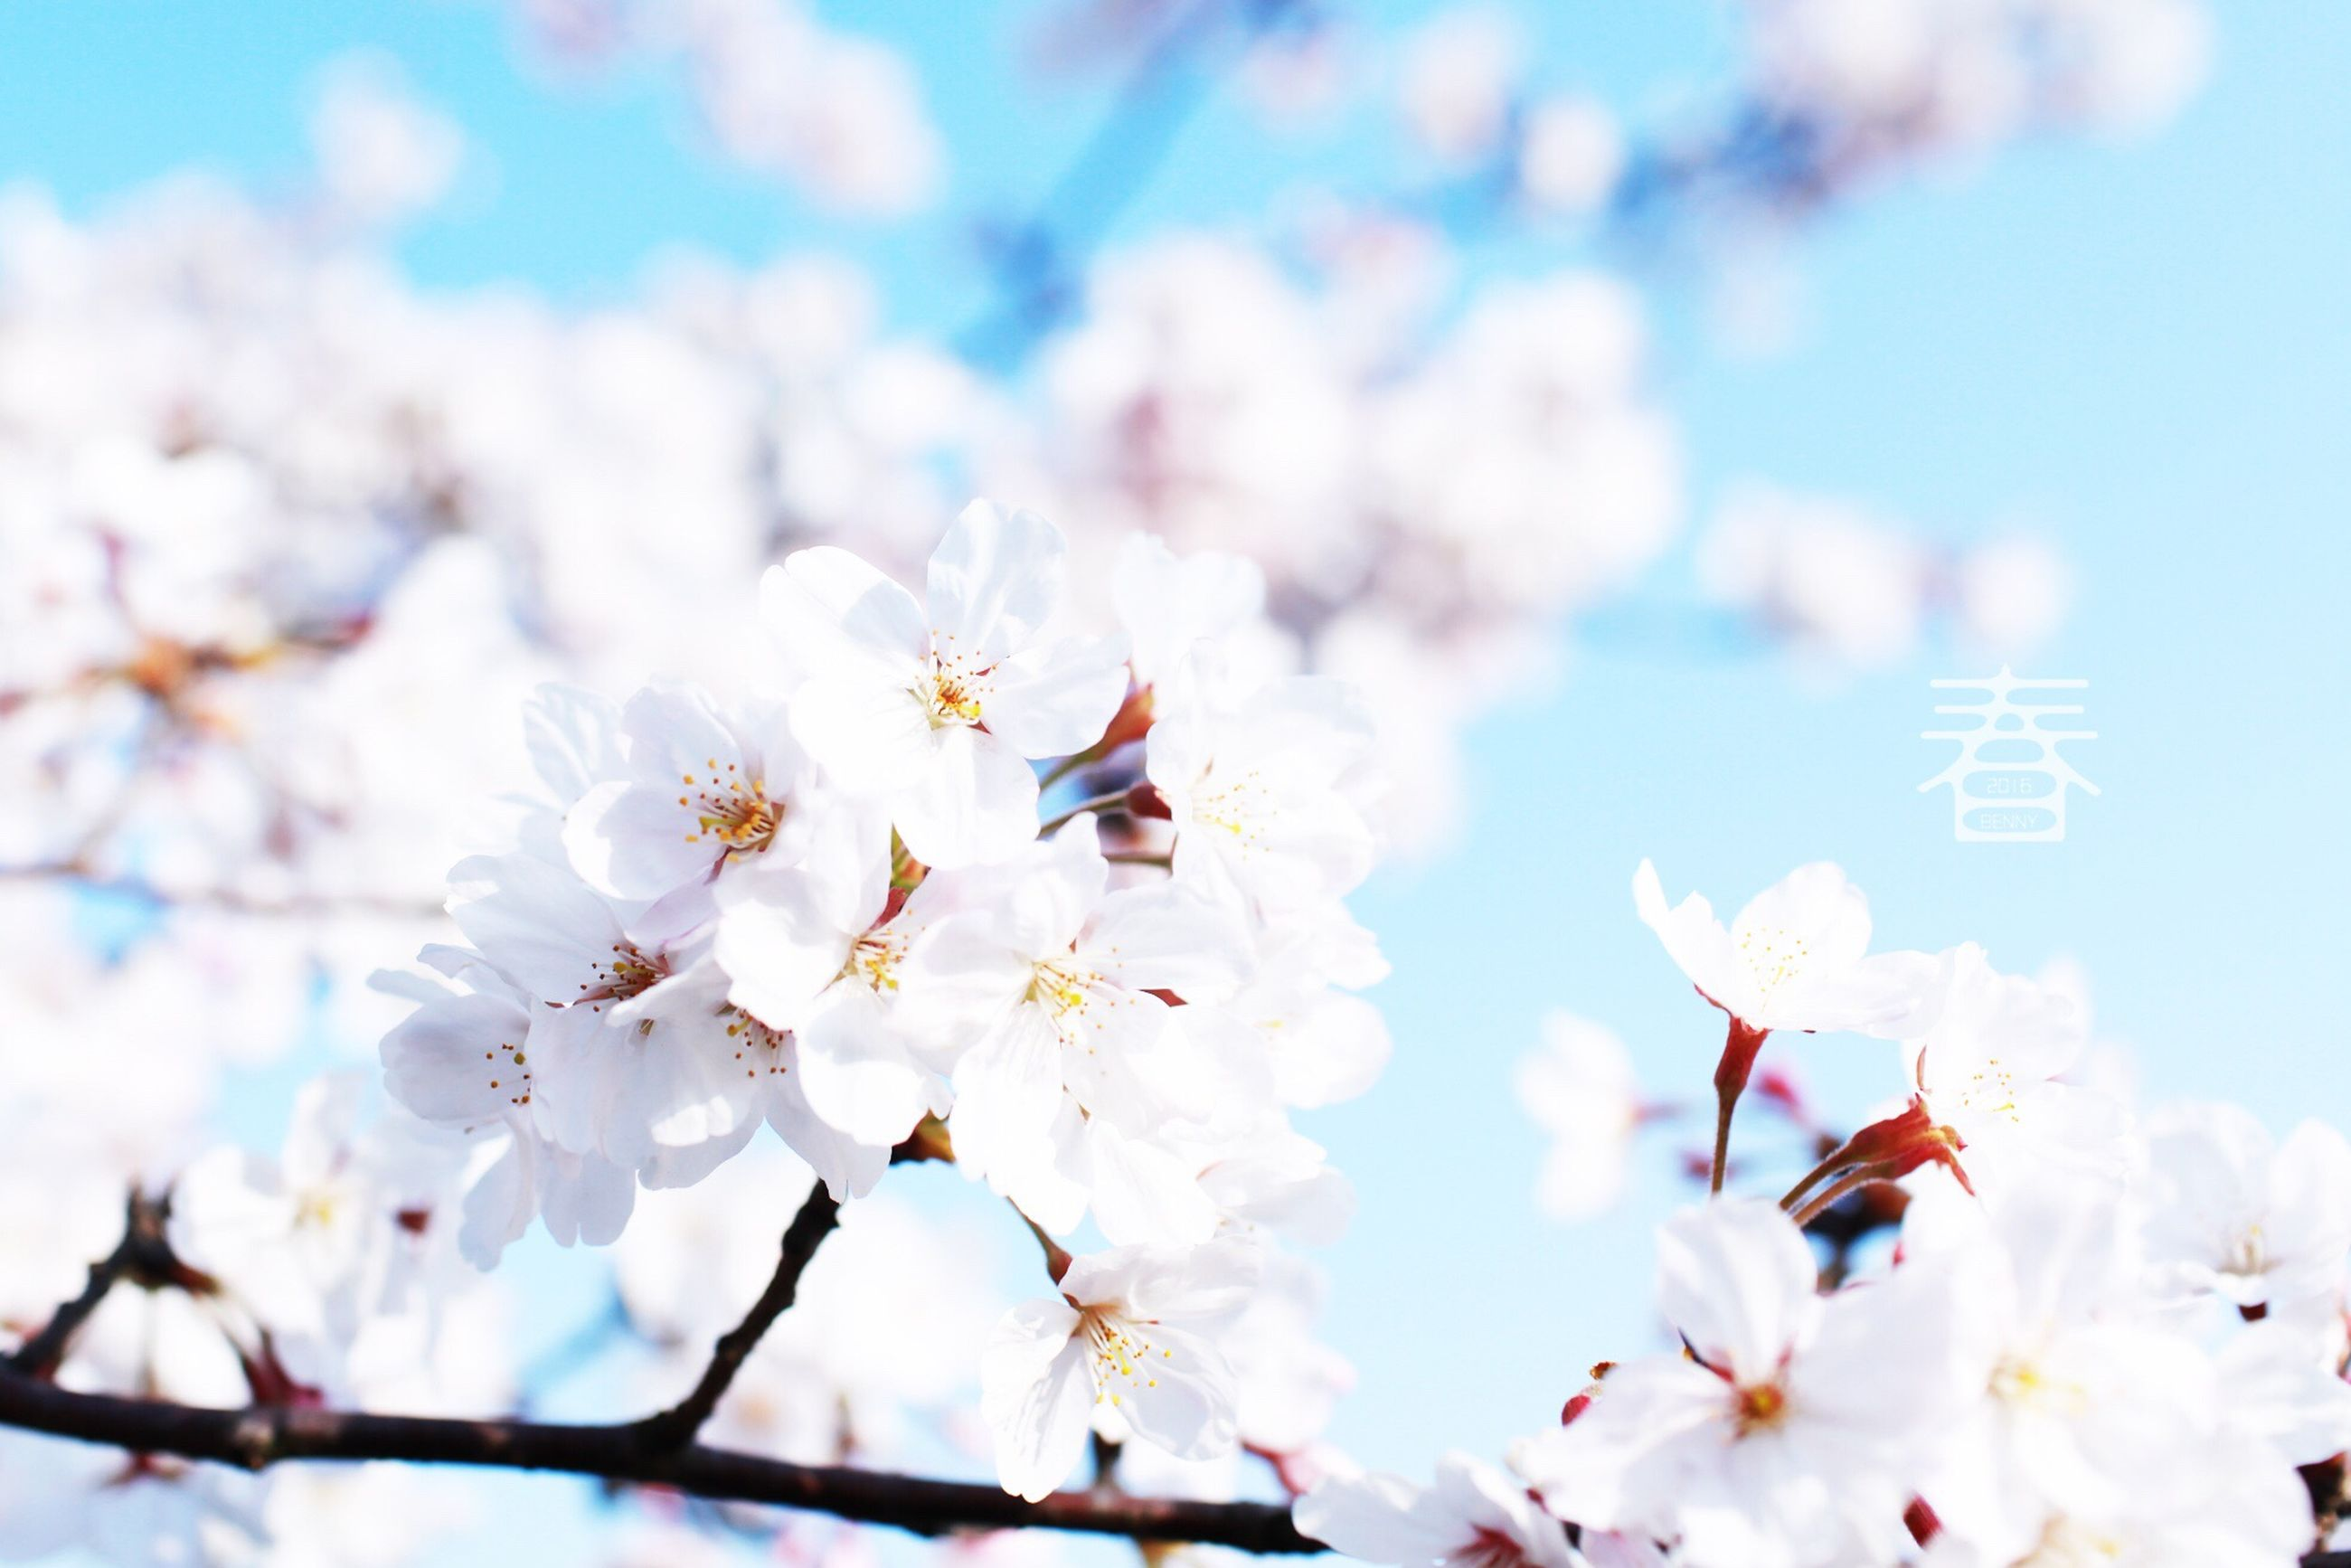 flower, freshness, fragility, cherry blossom, low angle view, petal, beauty in nature, growth, nature, sky, tree, cherry tree, blossom, white color, focus on foreground, blooming, branch, day, in bloom, springtime